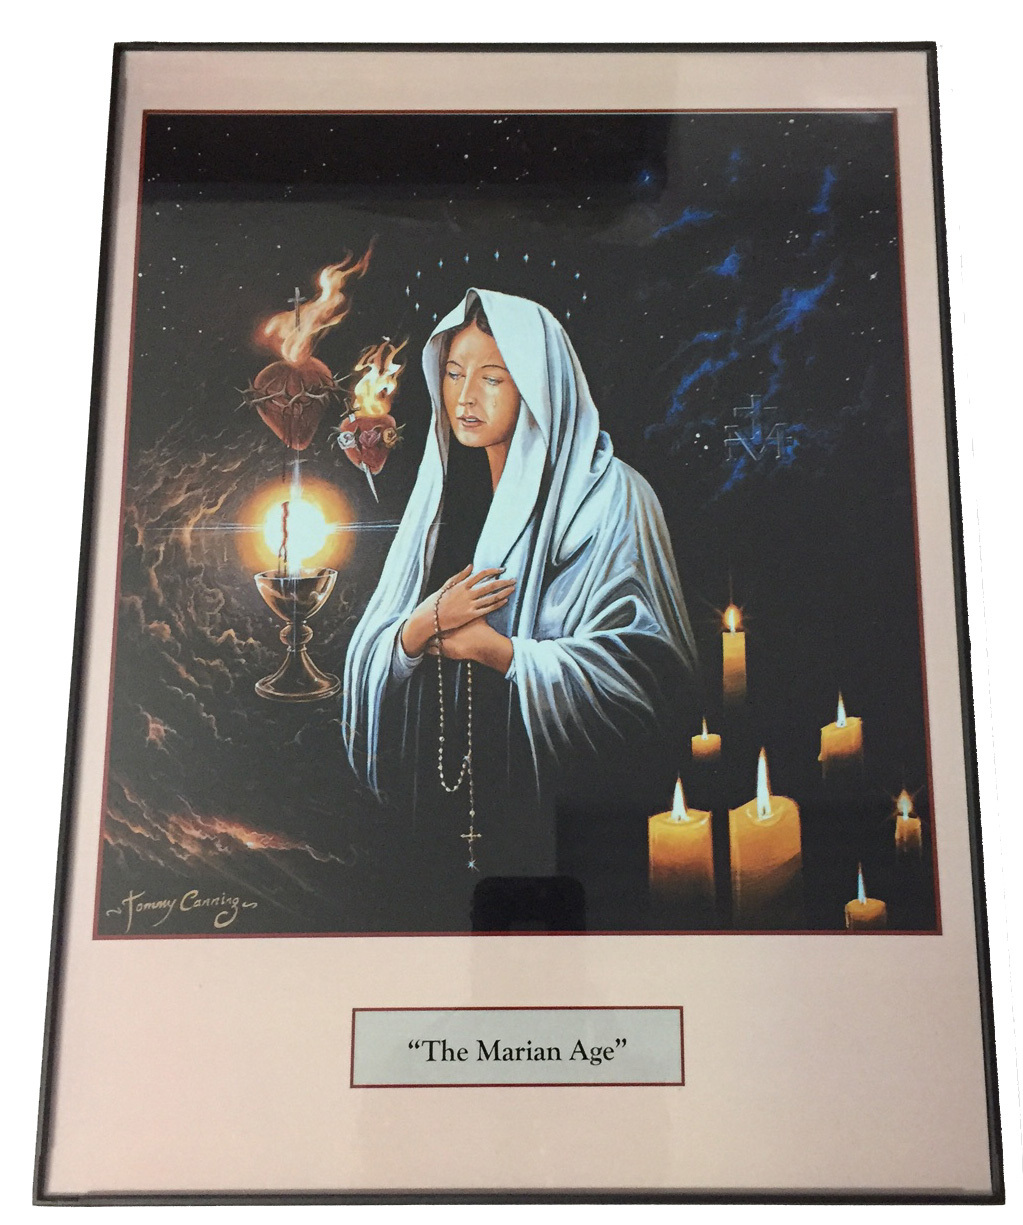 The marian age   print framed by tommy canning